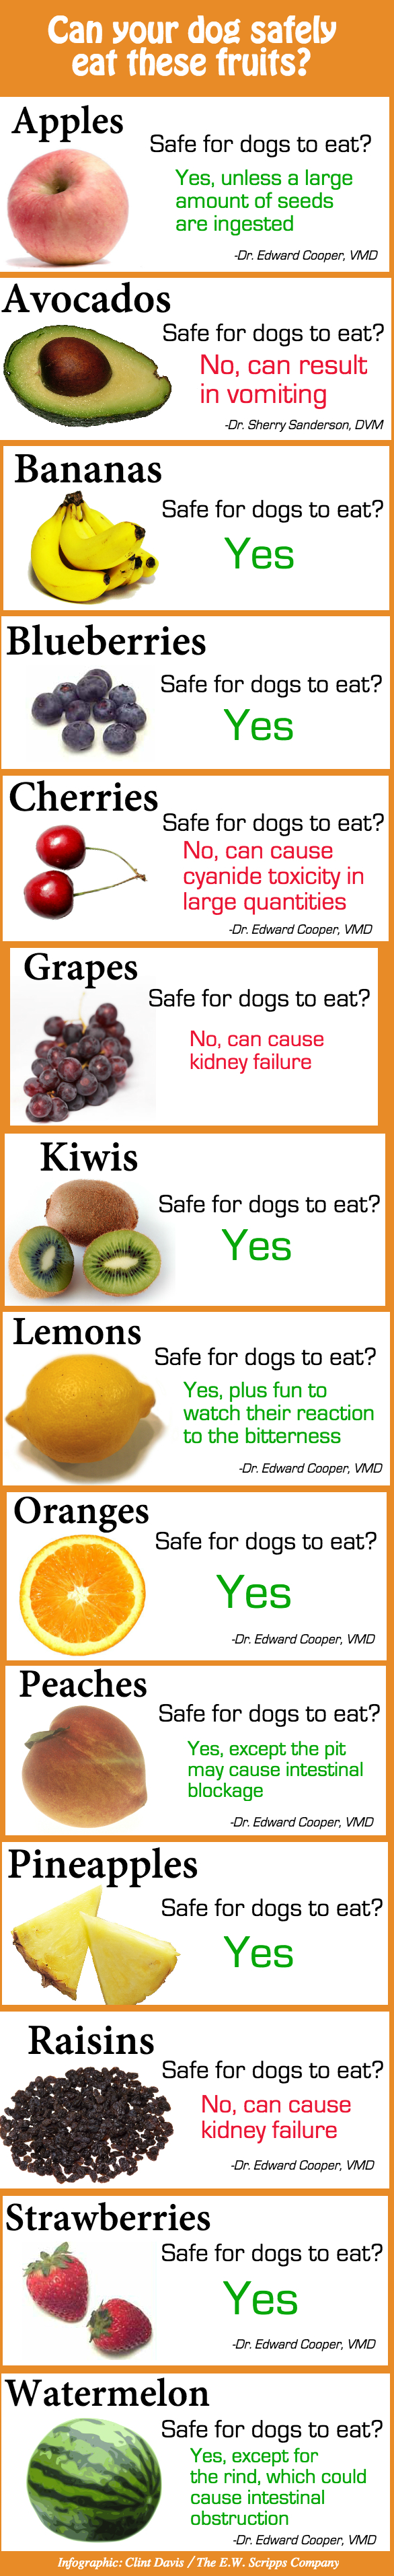 These are the fruits that are safe to share with your dog